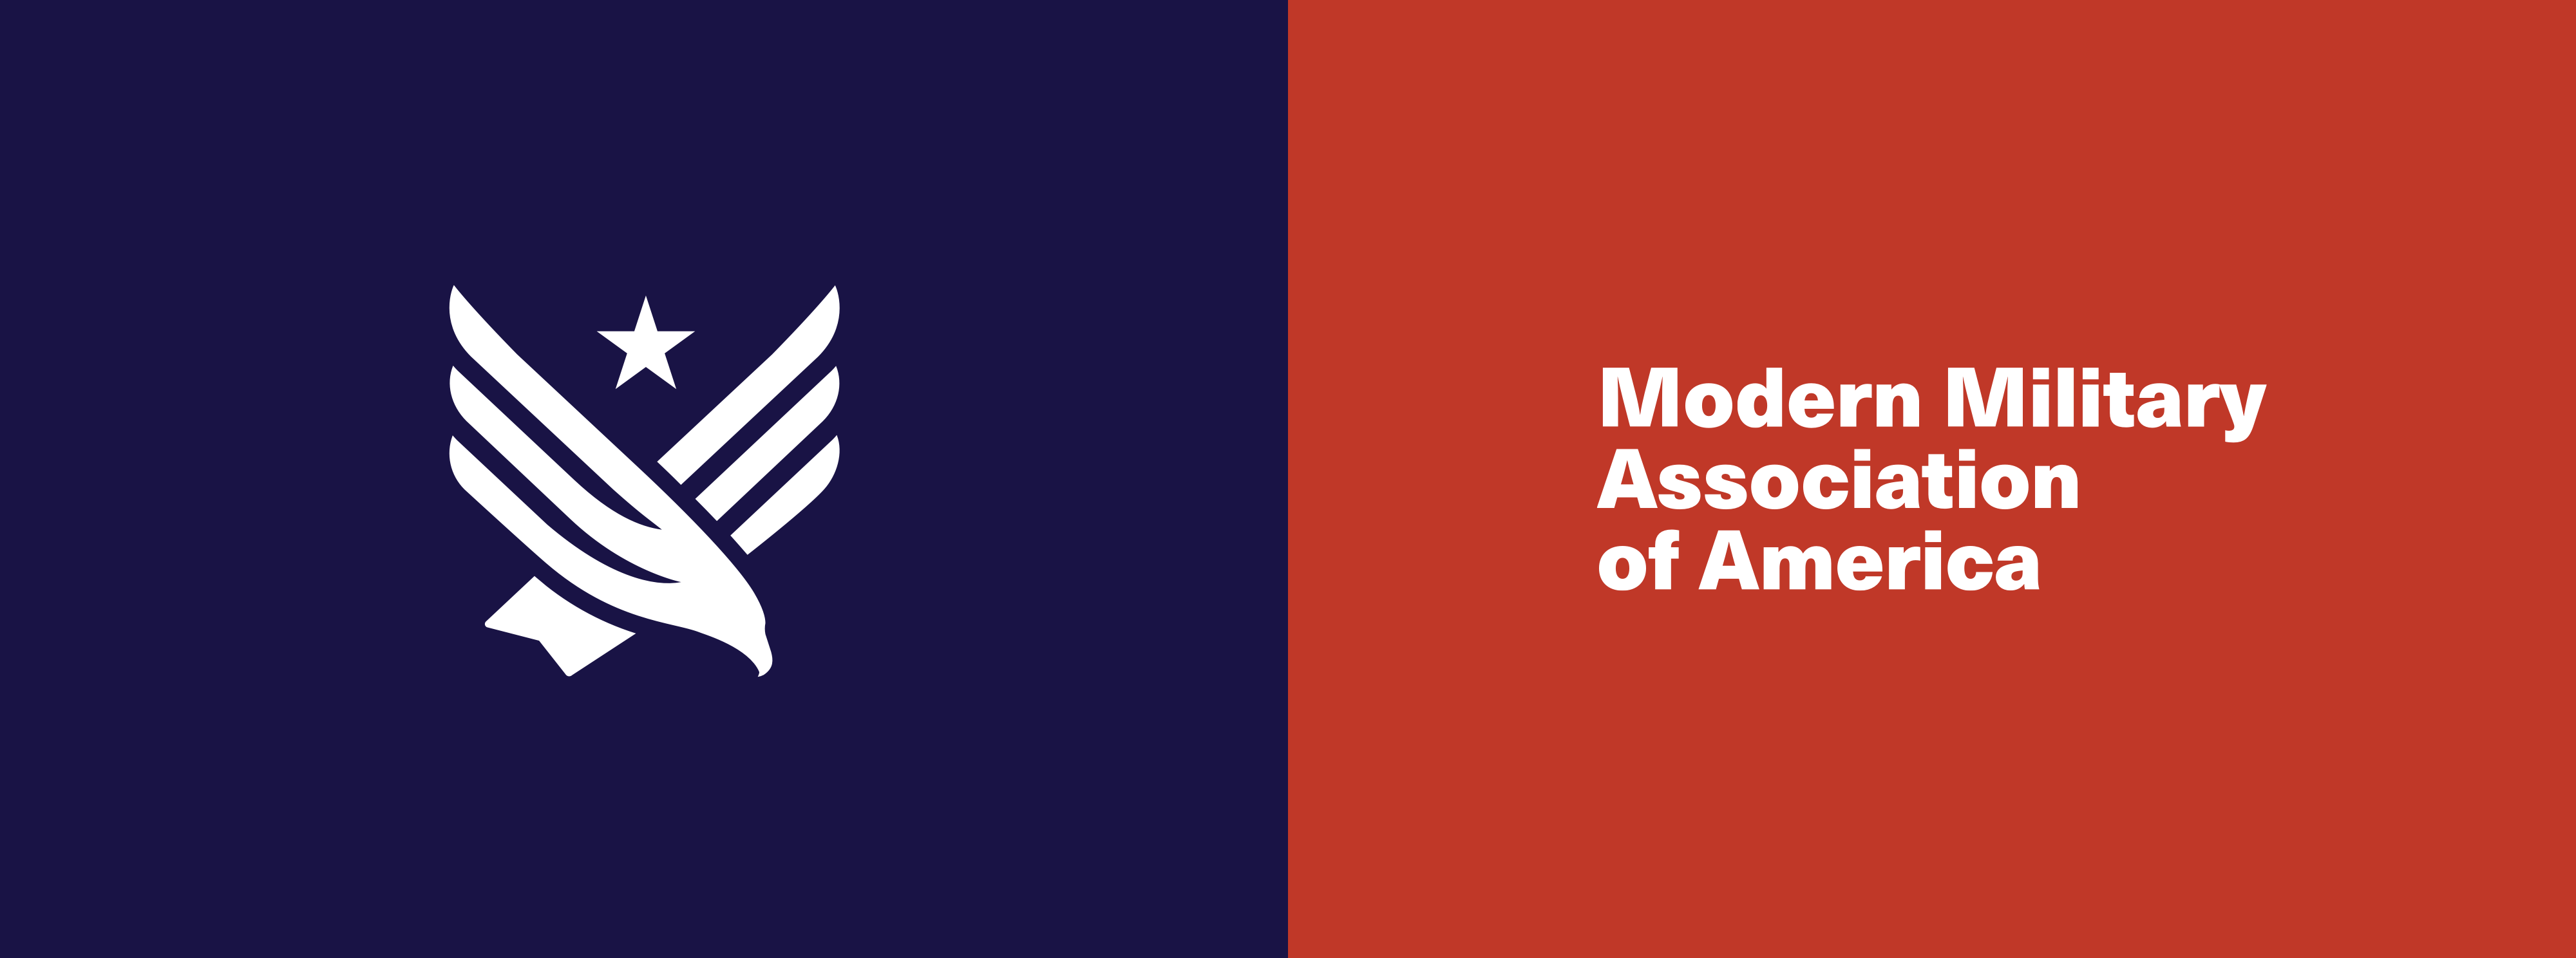 MMAA logo highlighting colors and typography